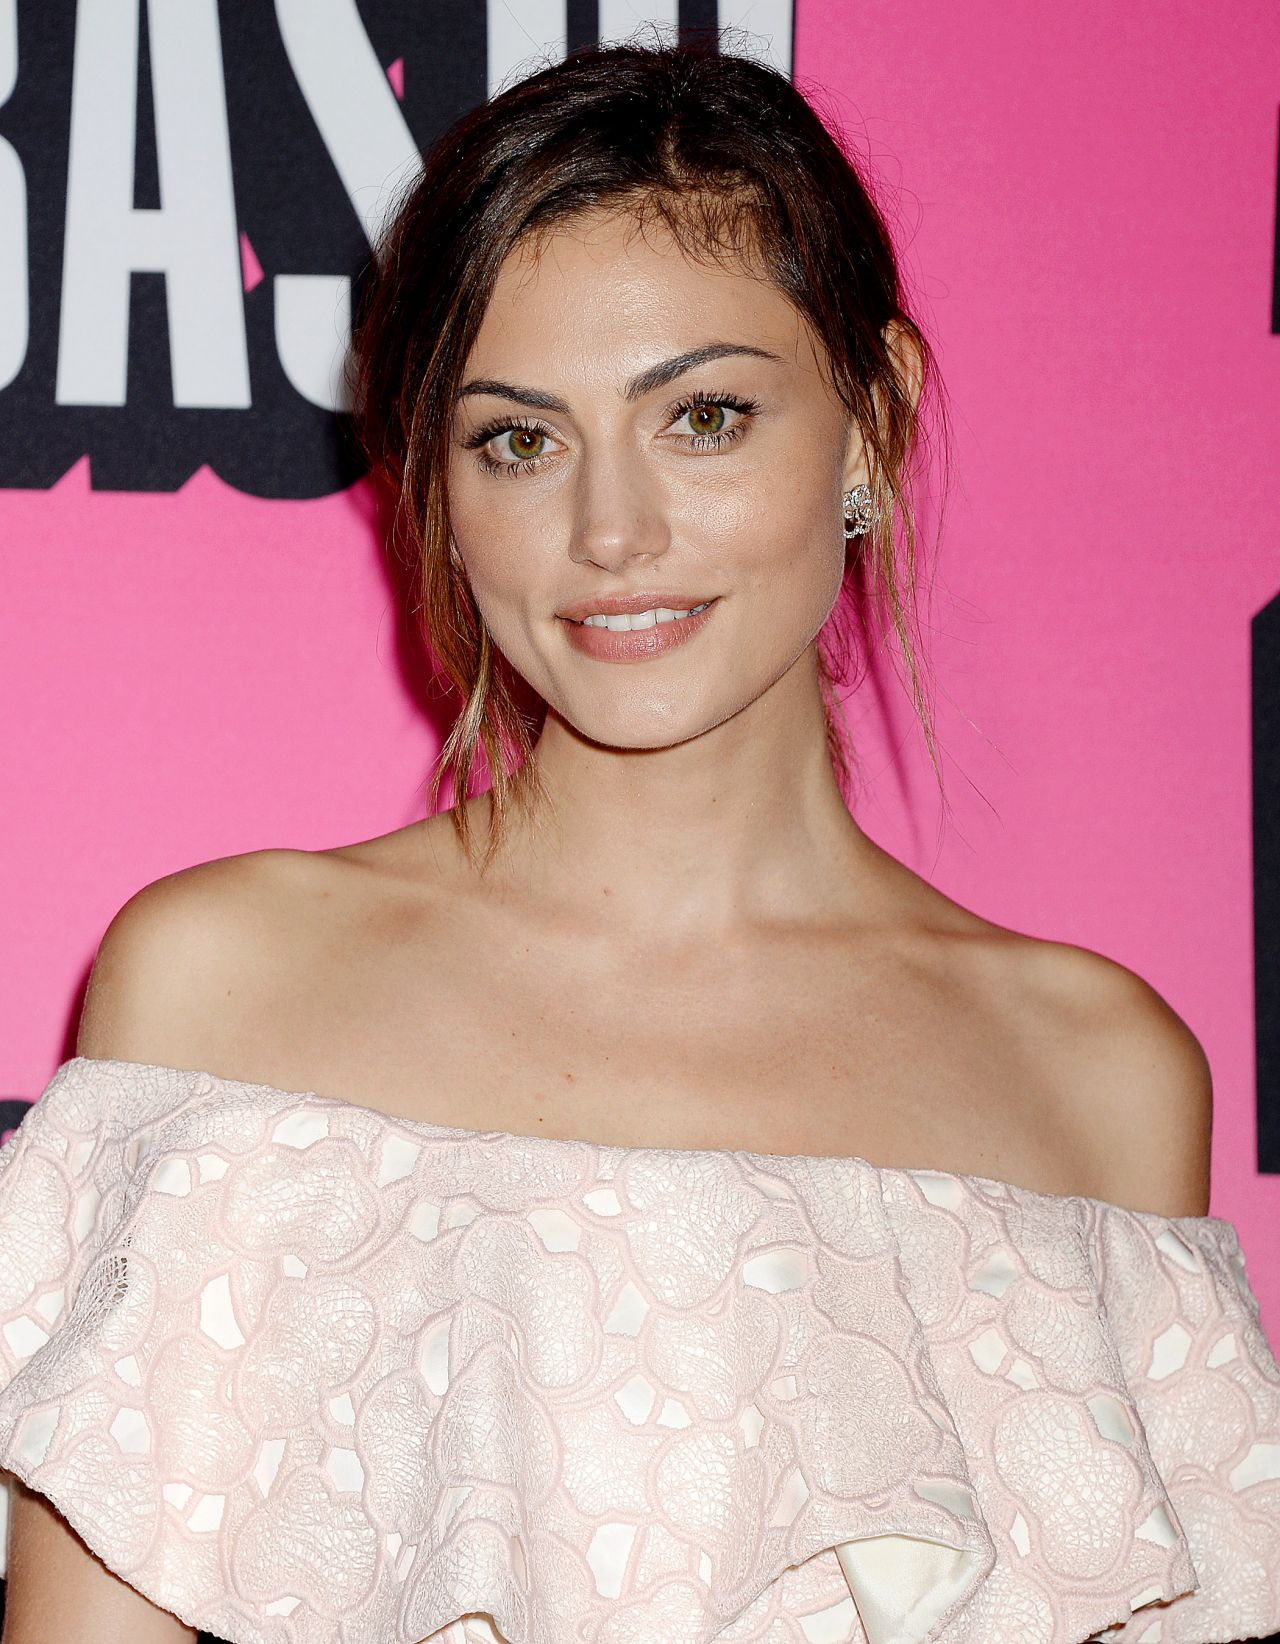 Phoebe Tonkin naked (72 photo), hot Sideboobs, Instagram, cleavage 2017